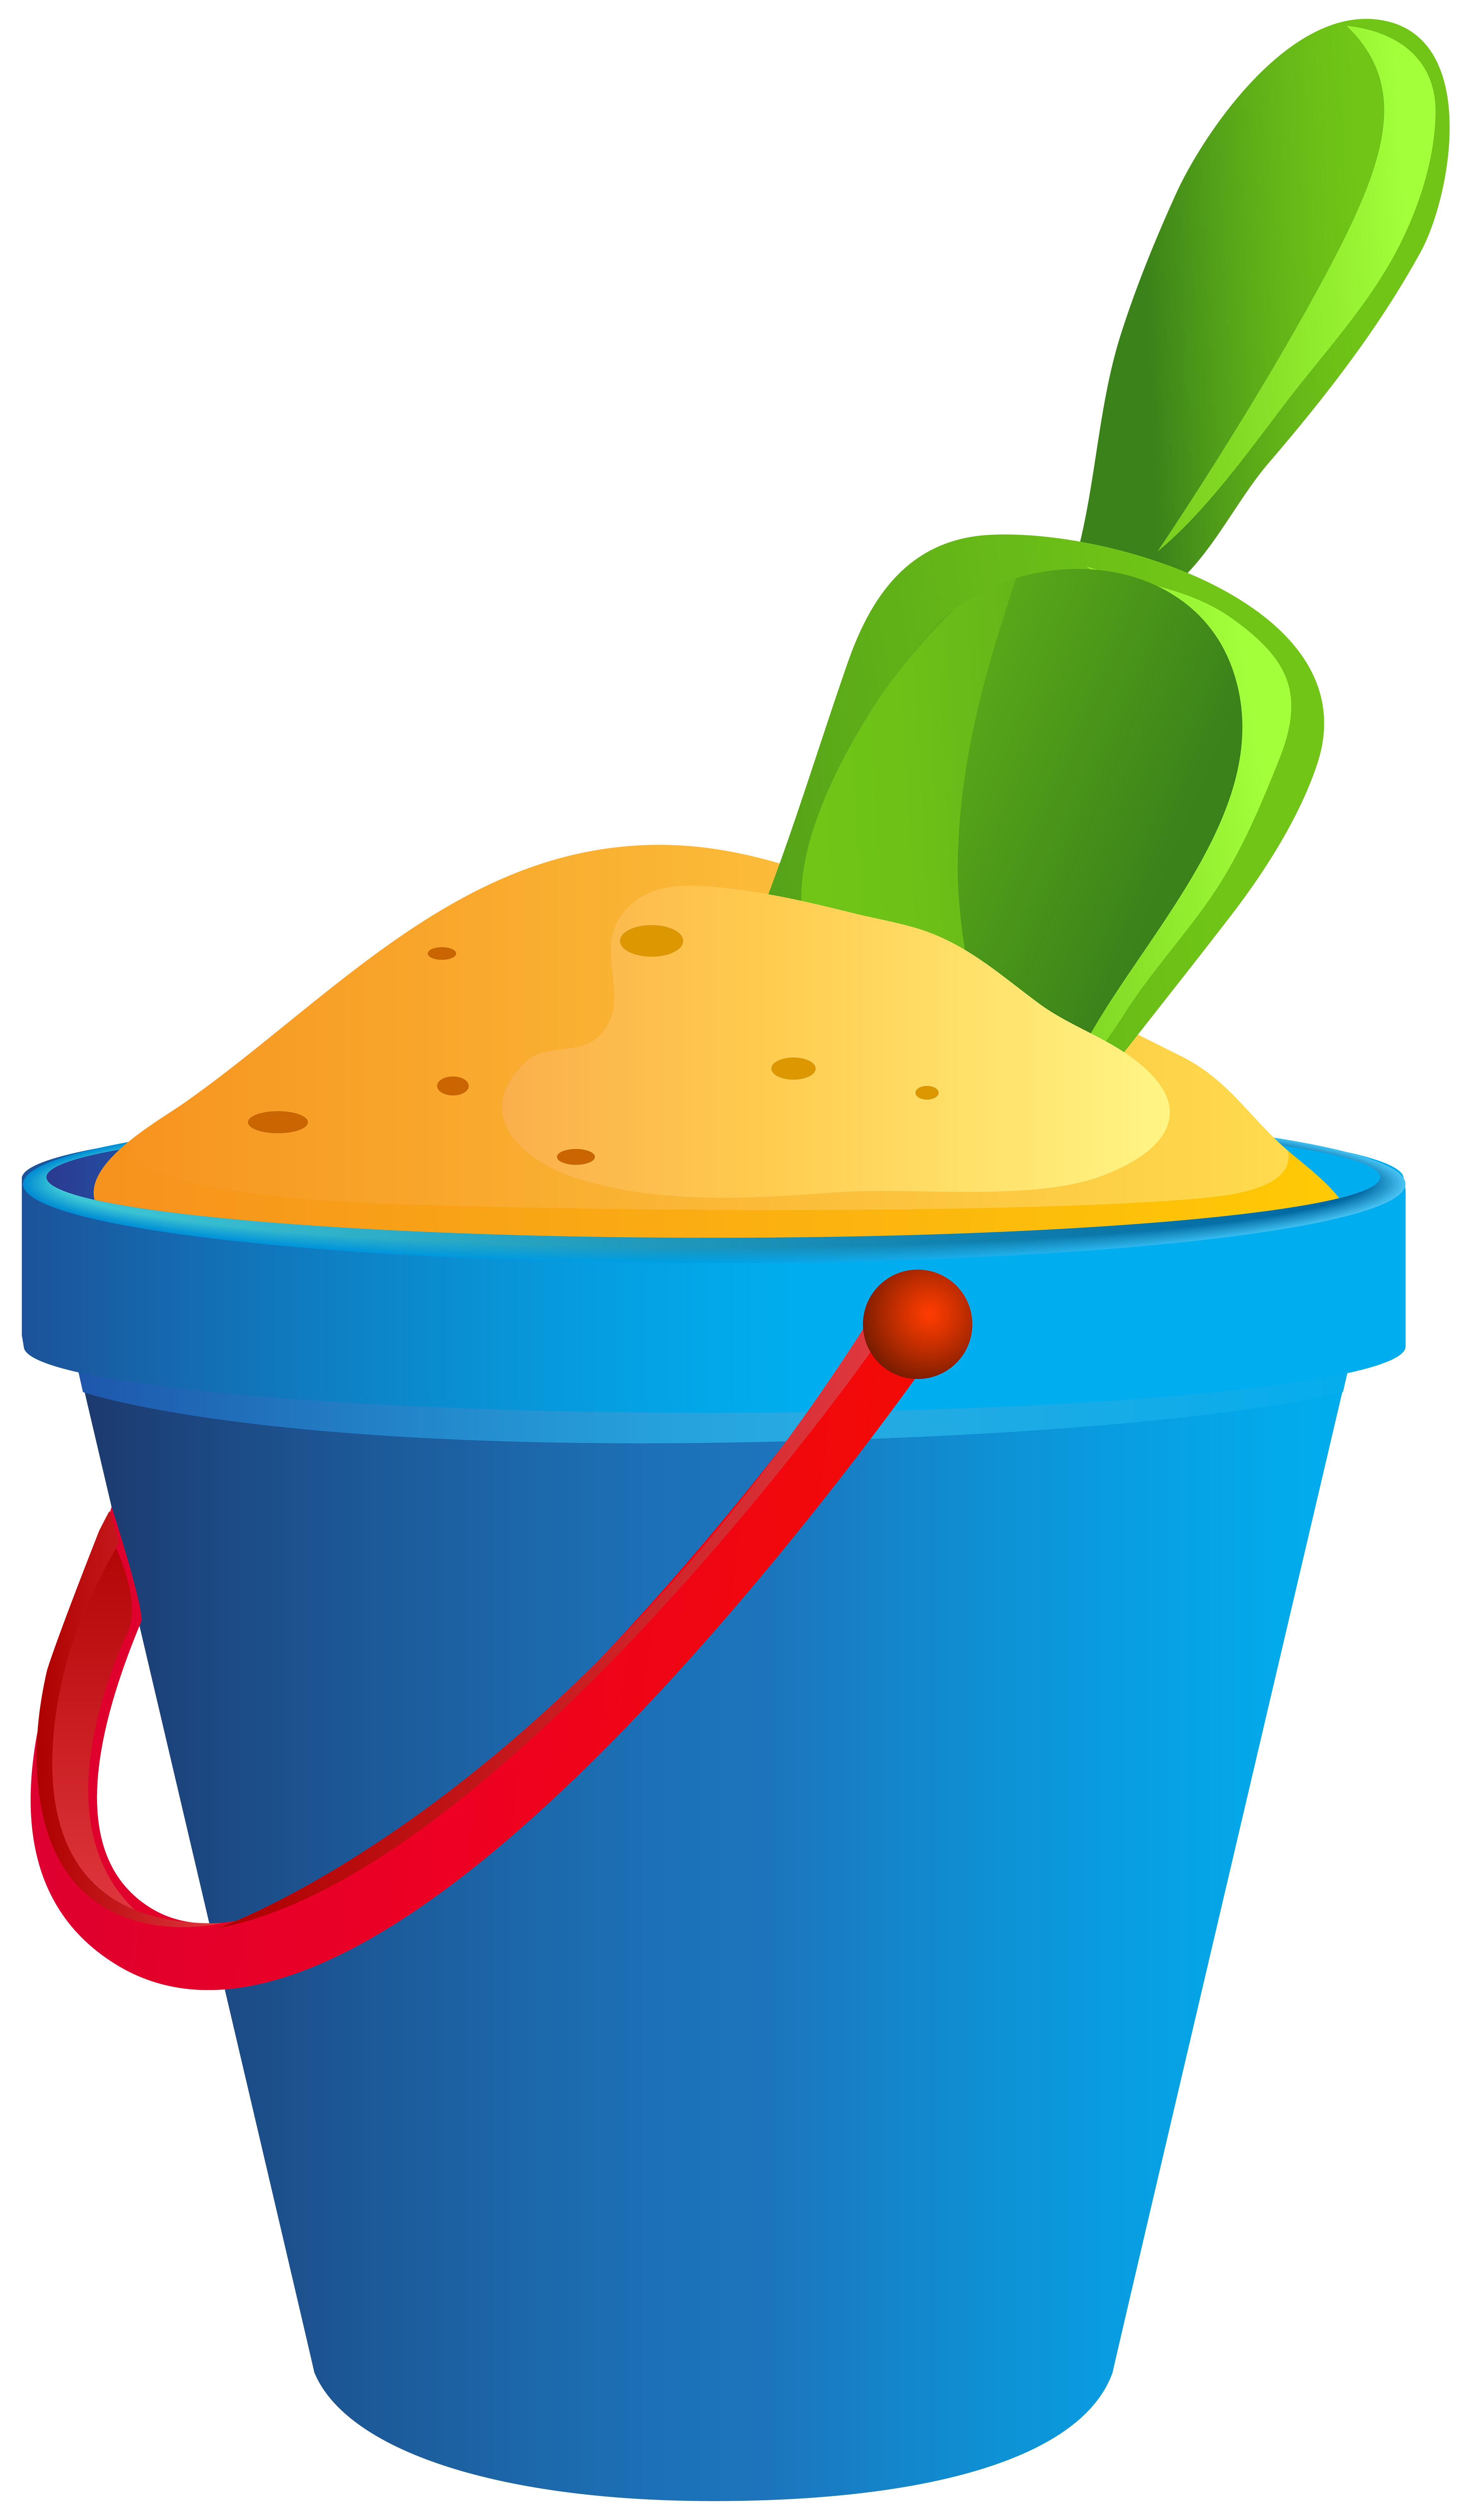 Pumpkin pail clipart vector Pail Clipart at GetDrawings.com | Free for personal use Pail Clipart ... vector